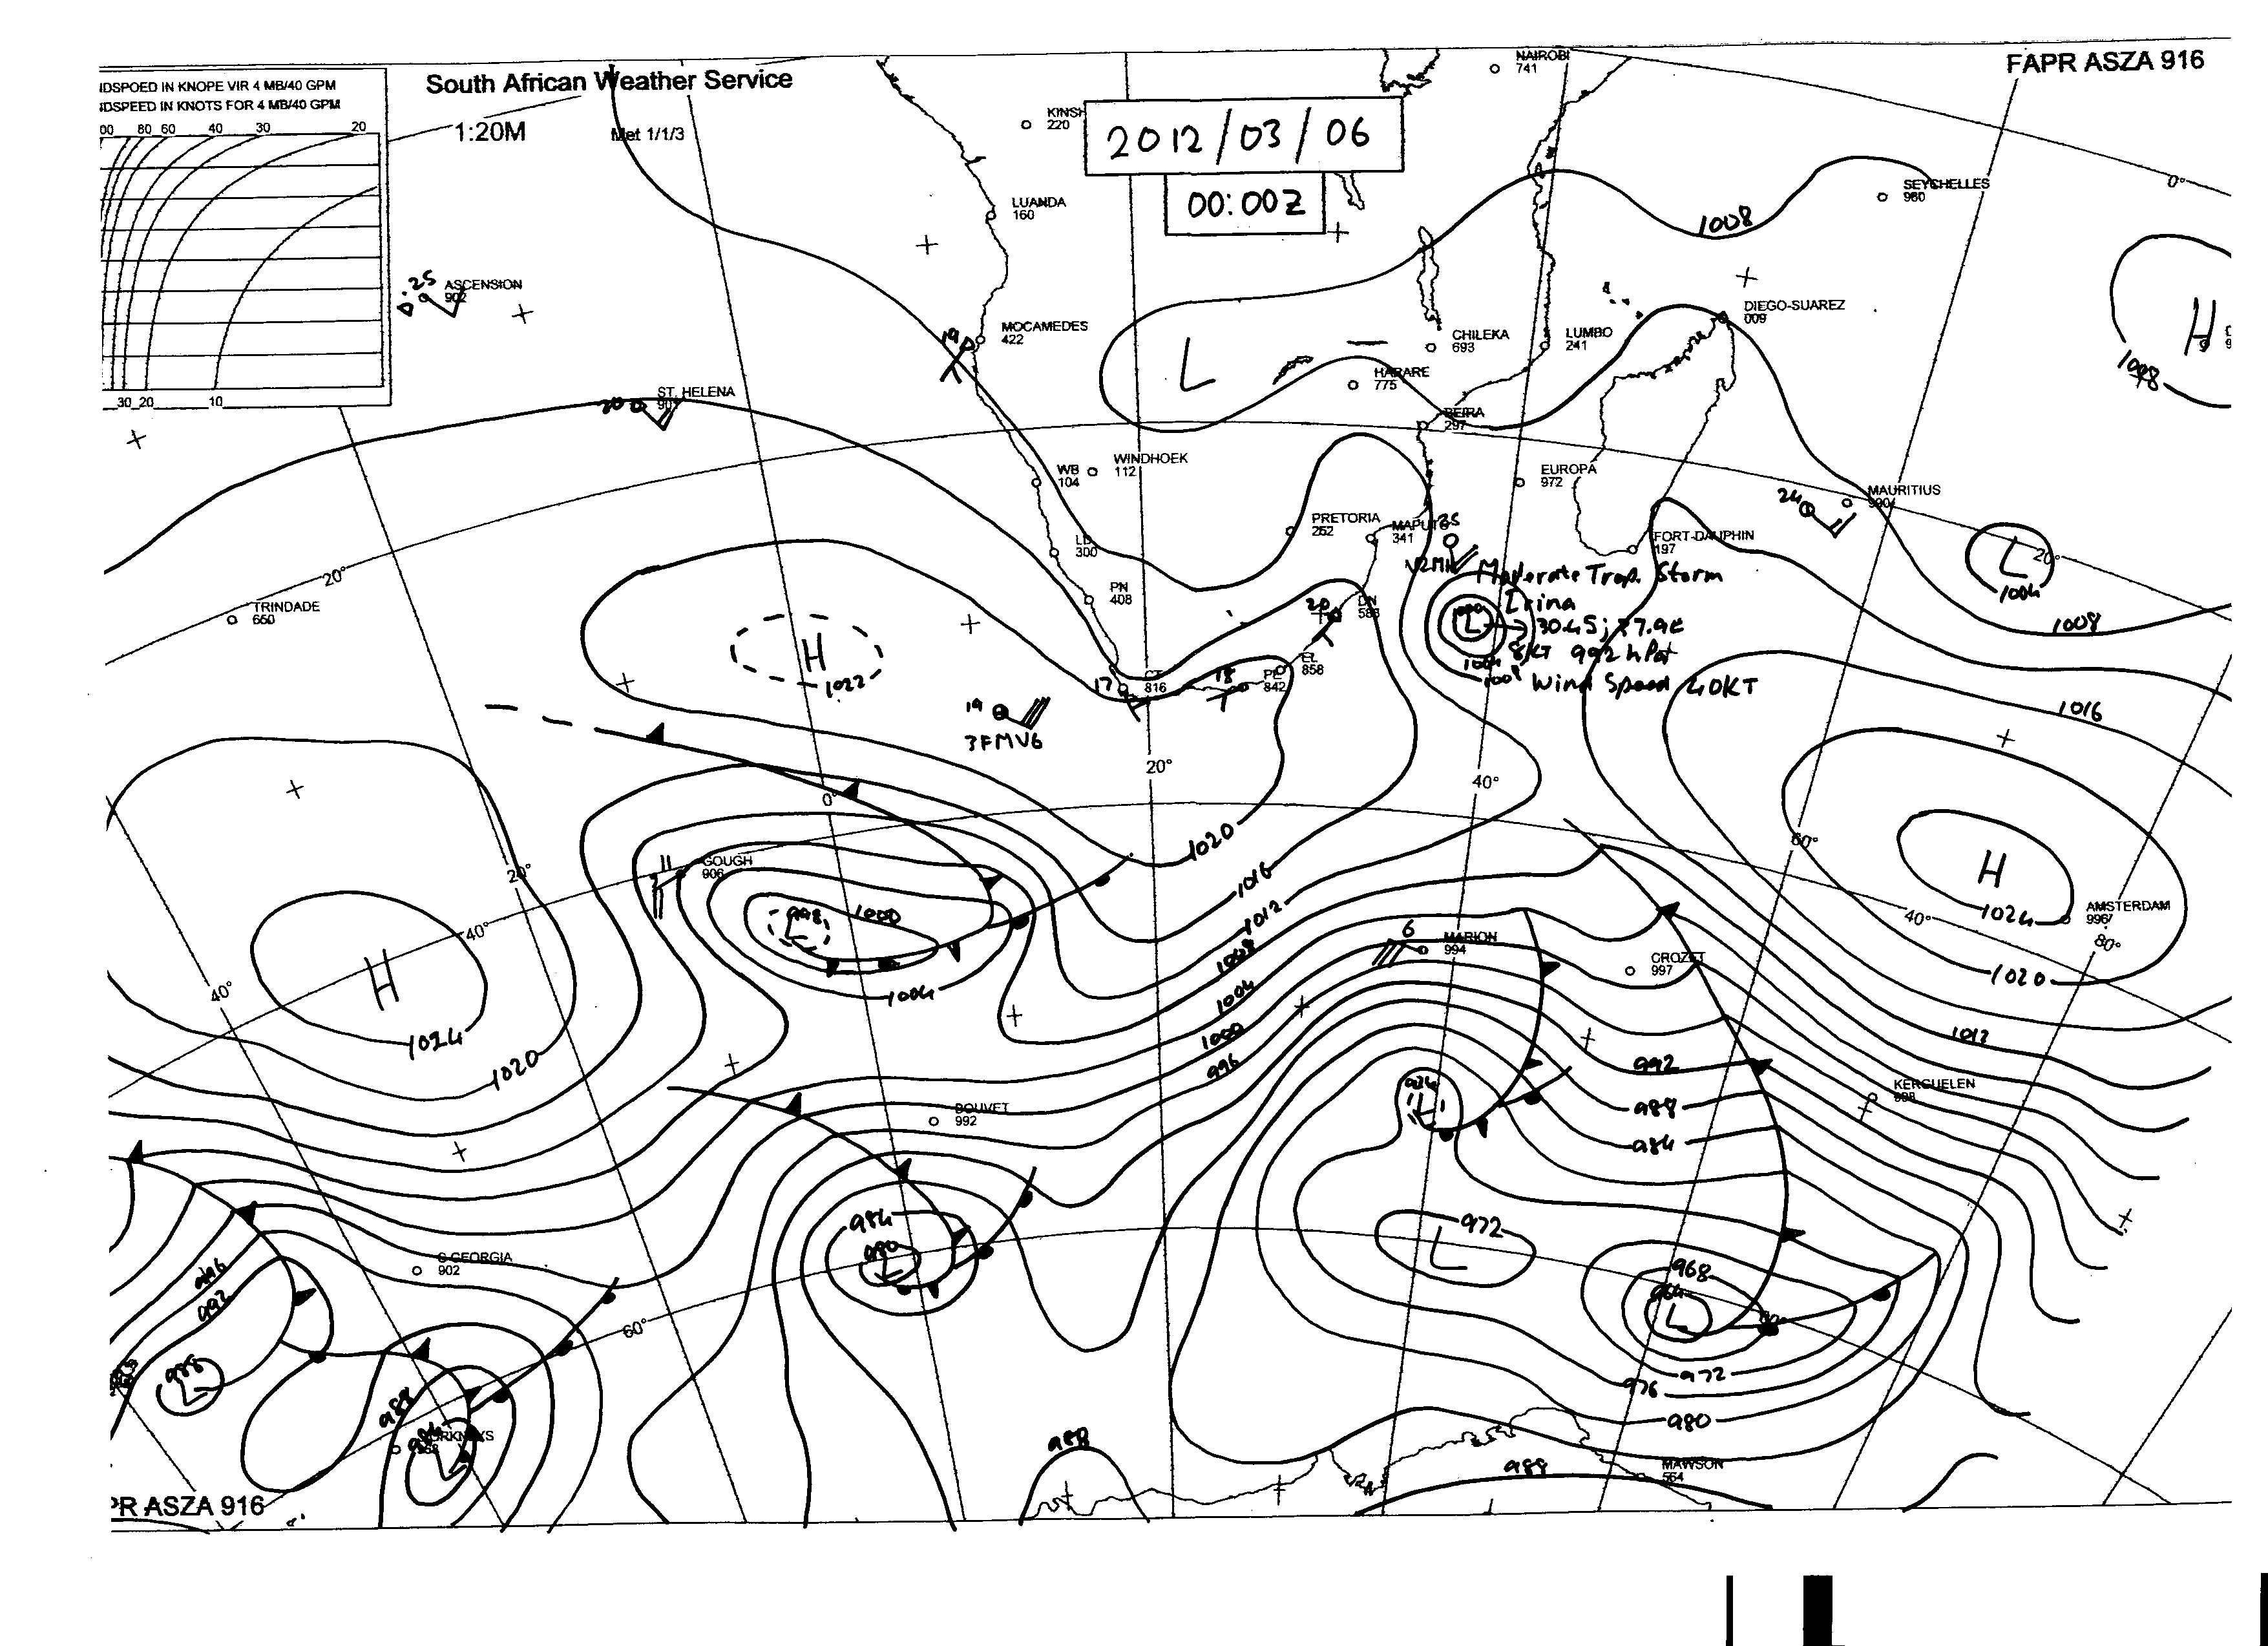 Synoptic weather map images synoptic weather map weather map 6 march 2012 biocorpaavc